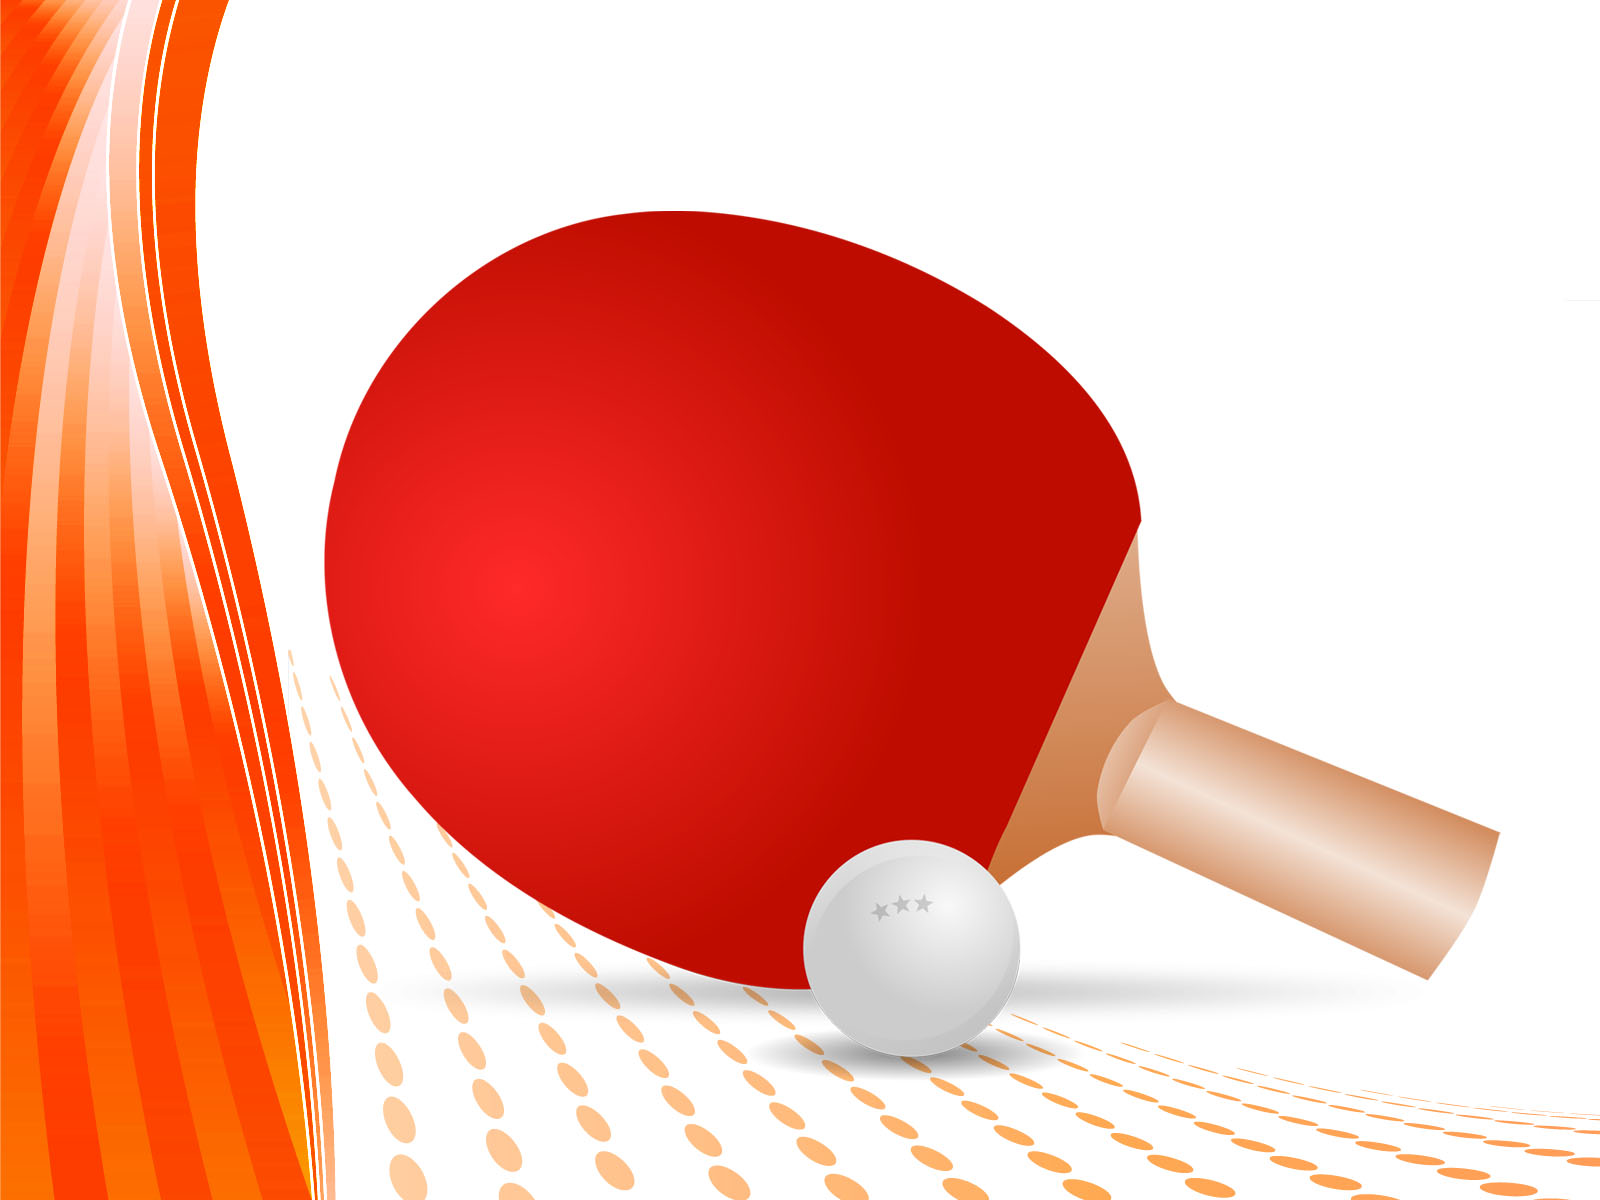 tv game show powerpoint templates - table tennis backgrounds sports templates free ppt